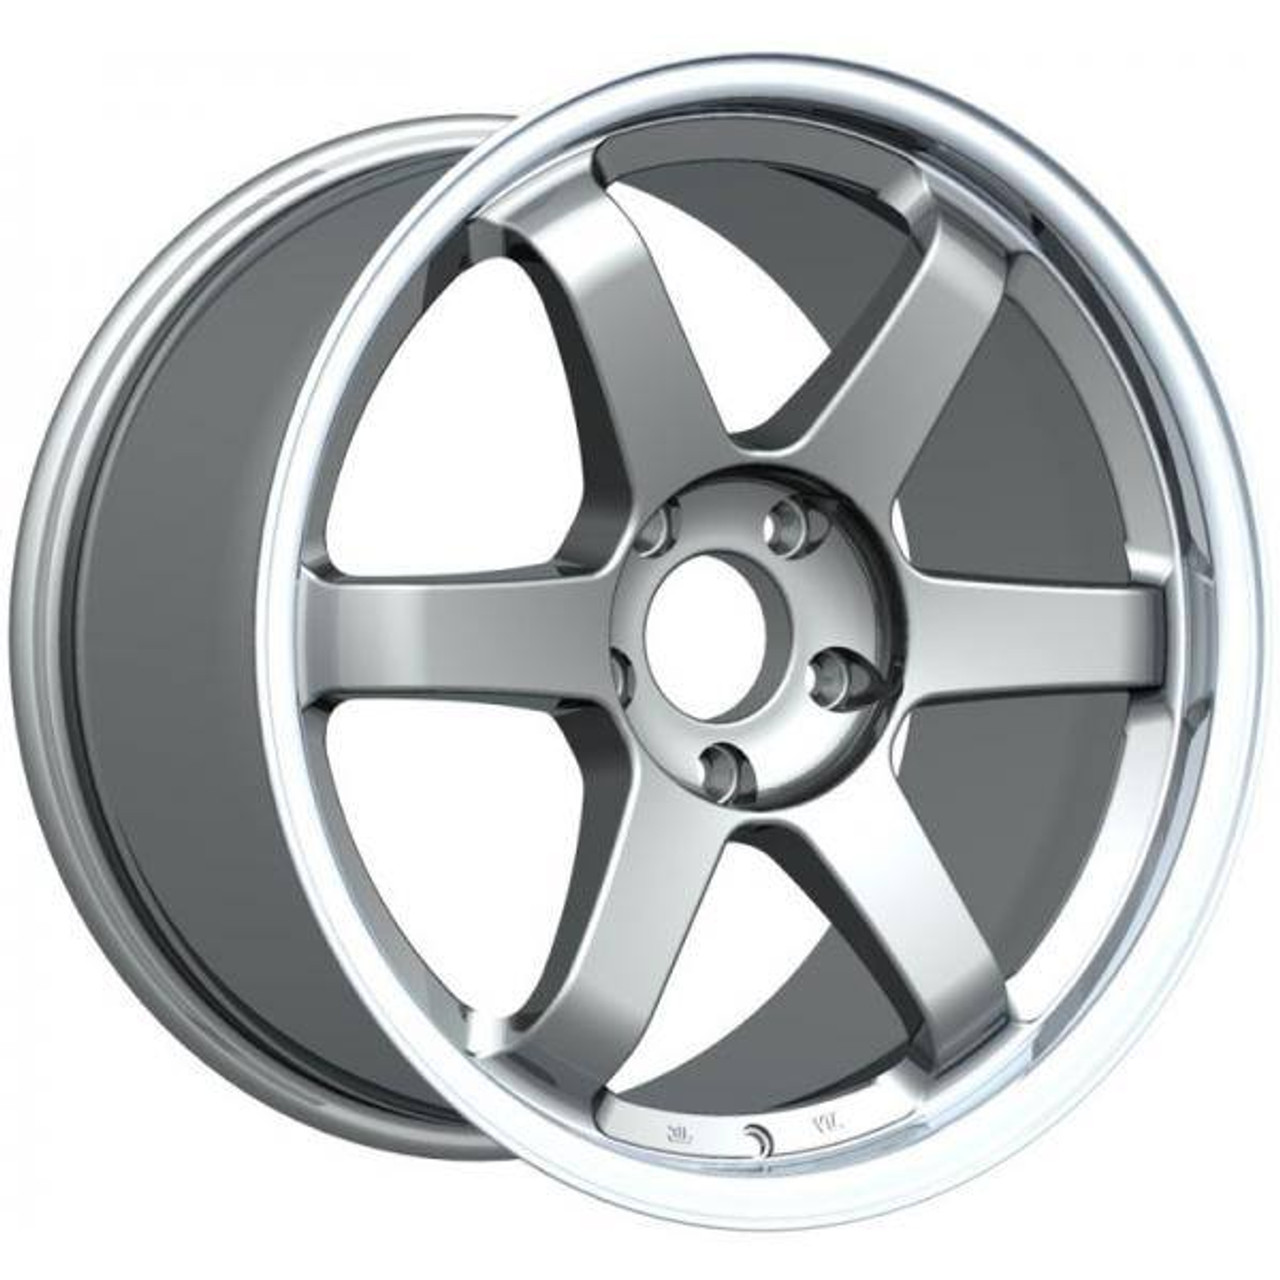 Inovit ST16 Alloy Wheels Gunmetal Machined Lip